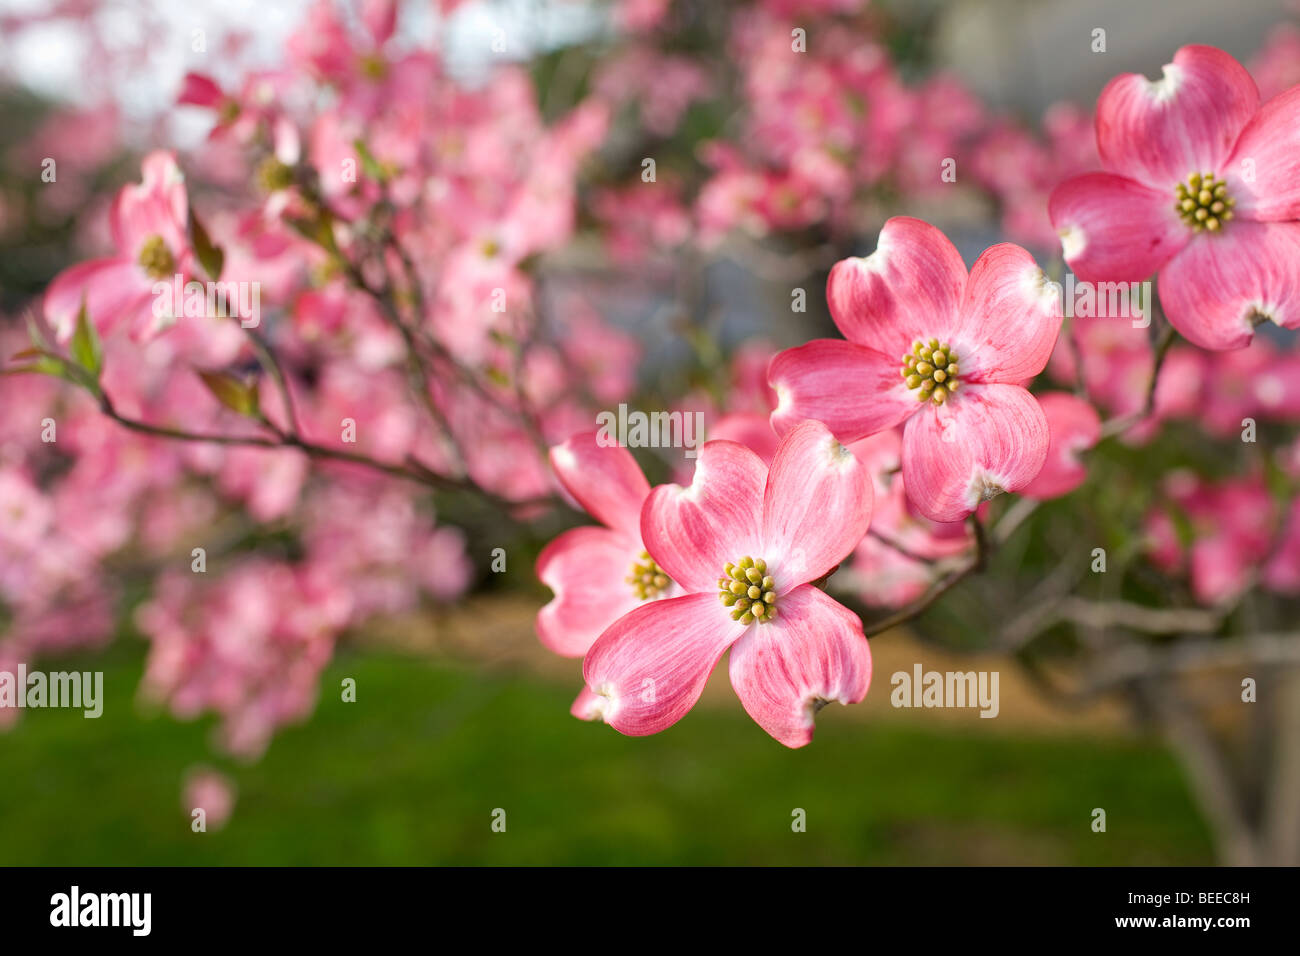 Dogwood Blossoms Stock Photos Dogwood Blossoms Stock Images Alamy